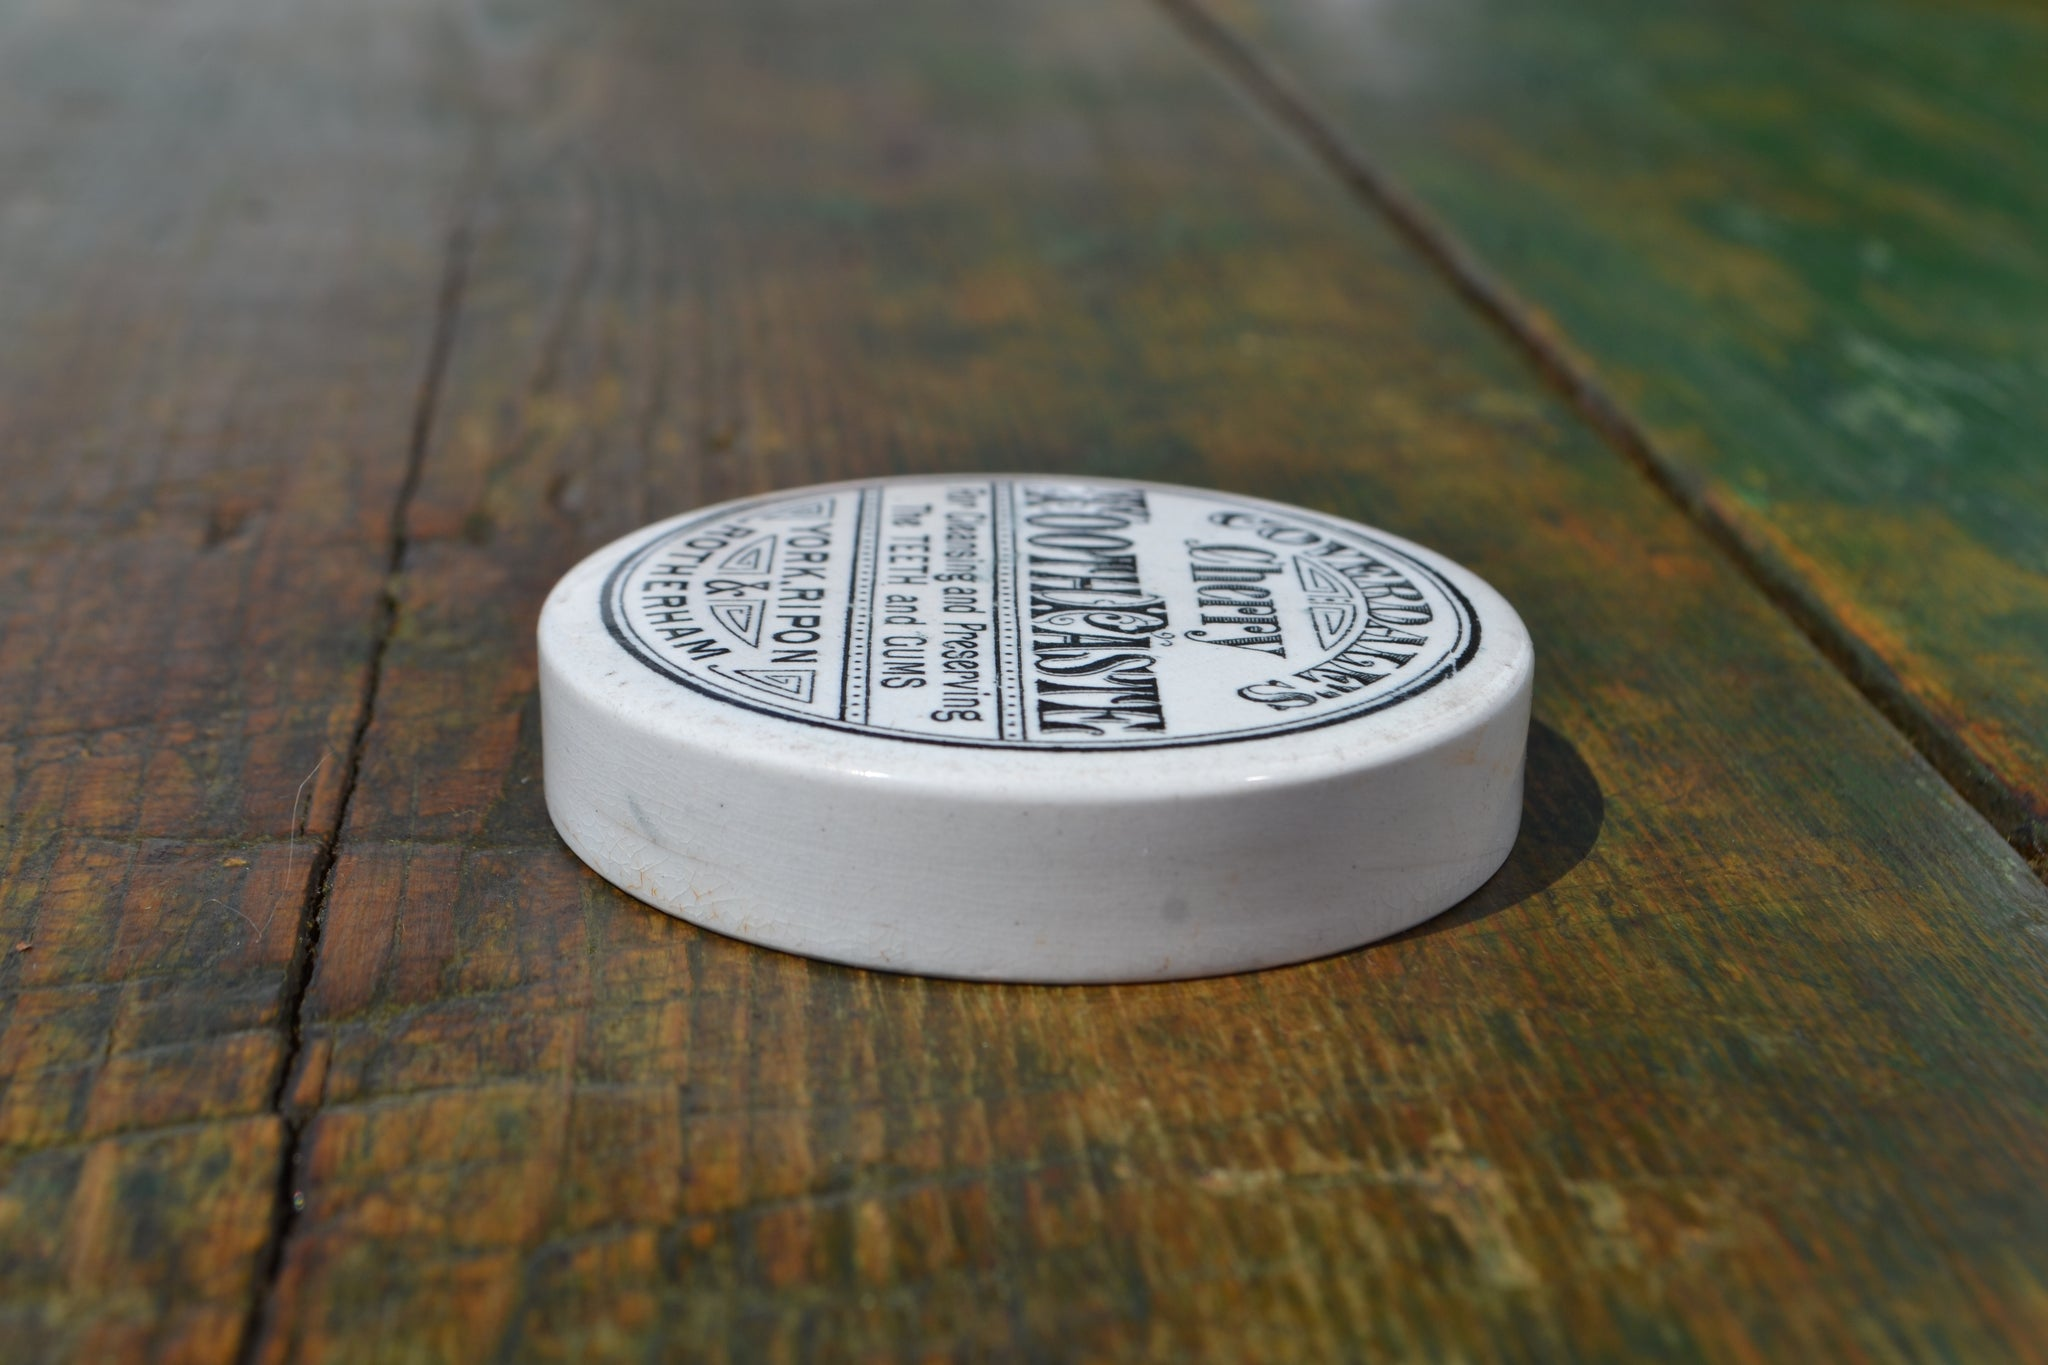 A Coverdale's Cherry Tooth paste pot lid